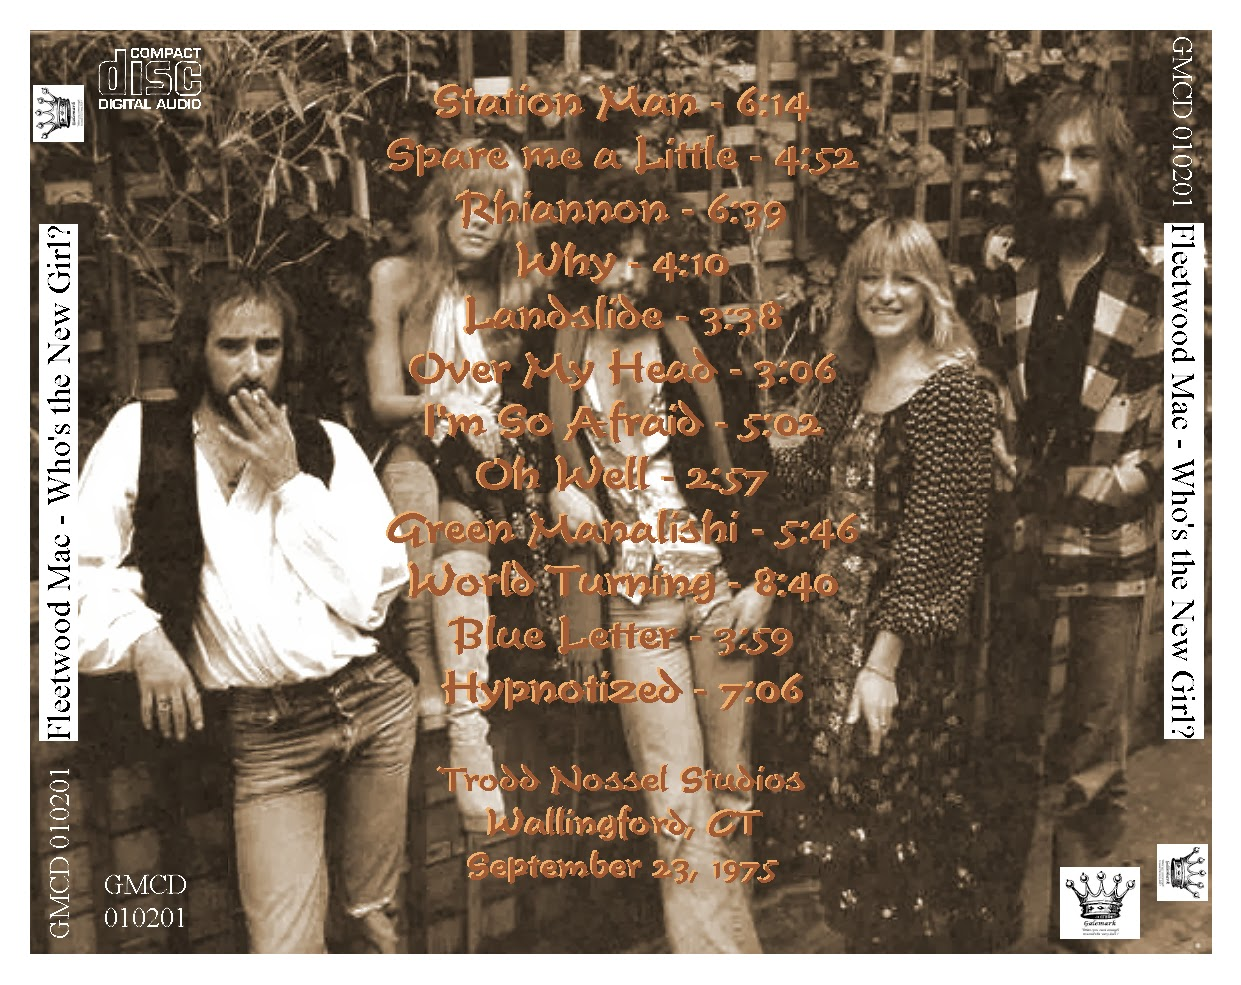 fleetwood single girls Lyrics to sweet girl by fleetwood mac: written by stevie nicks / and he says, what do you love to do / outside your world, / who spends.